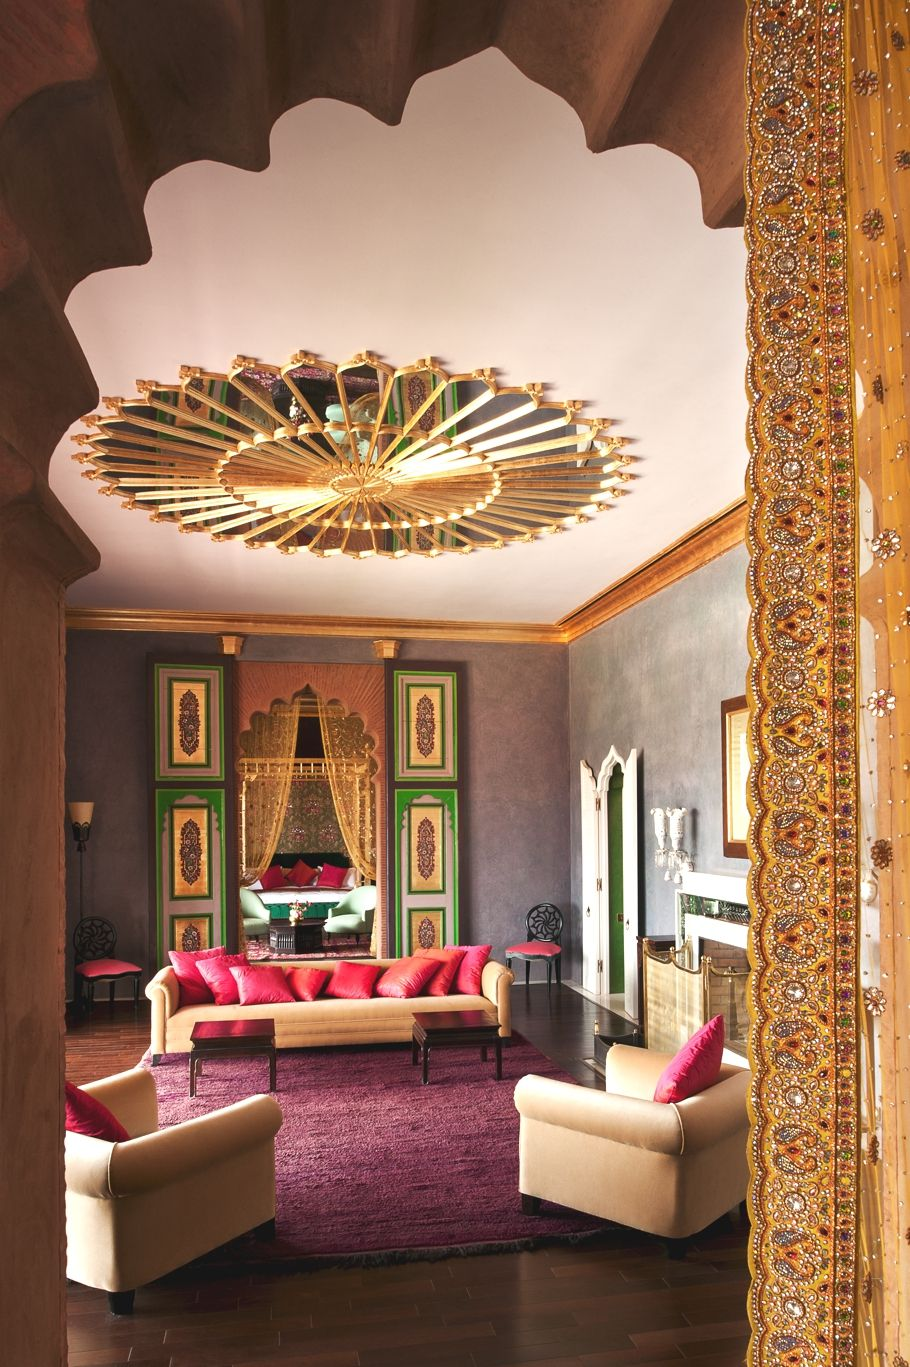 taj palace luxury hotel in marrakech book inspiration